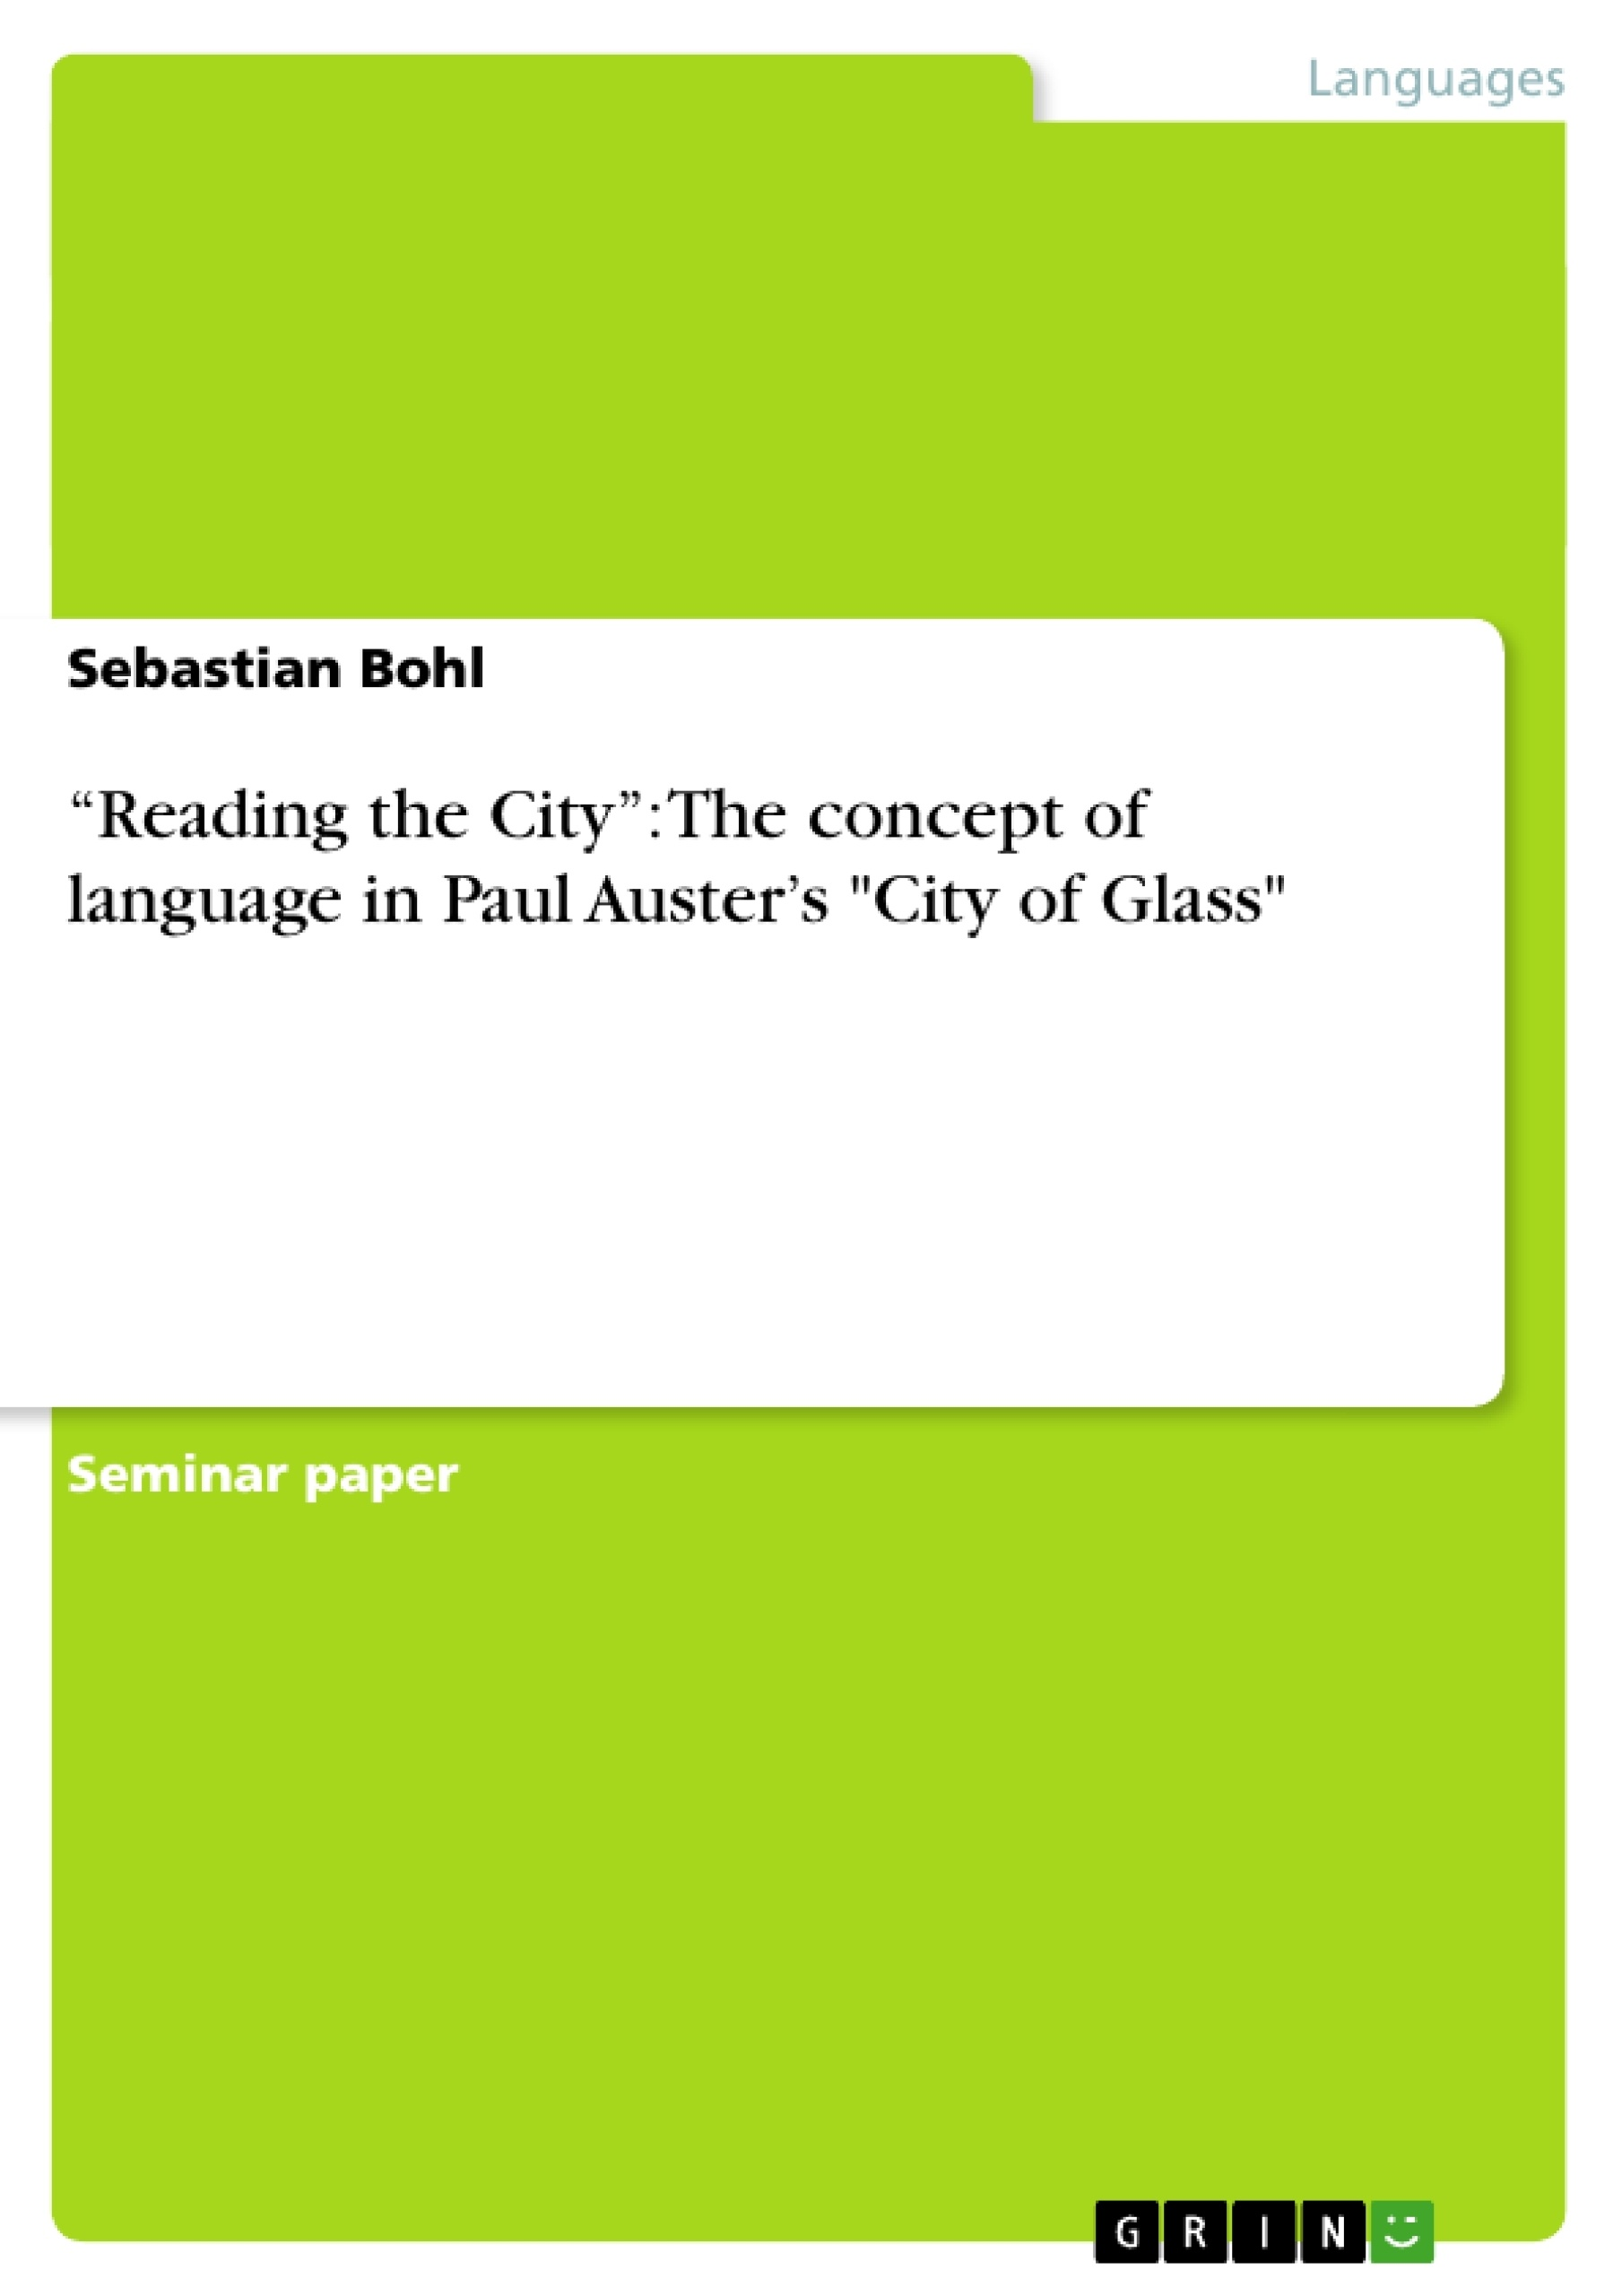 """Title: """"Reading the City"""": The concept of language in Paul Auster's """"City of Glass"""""""